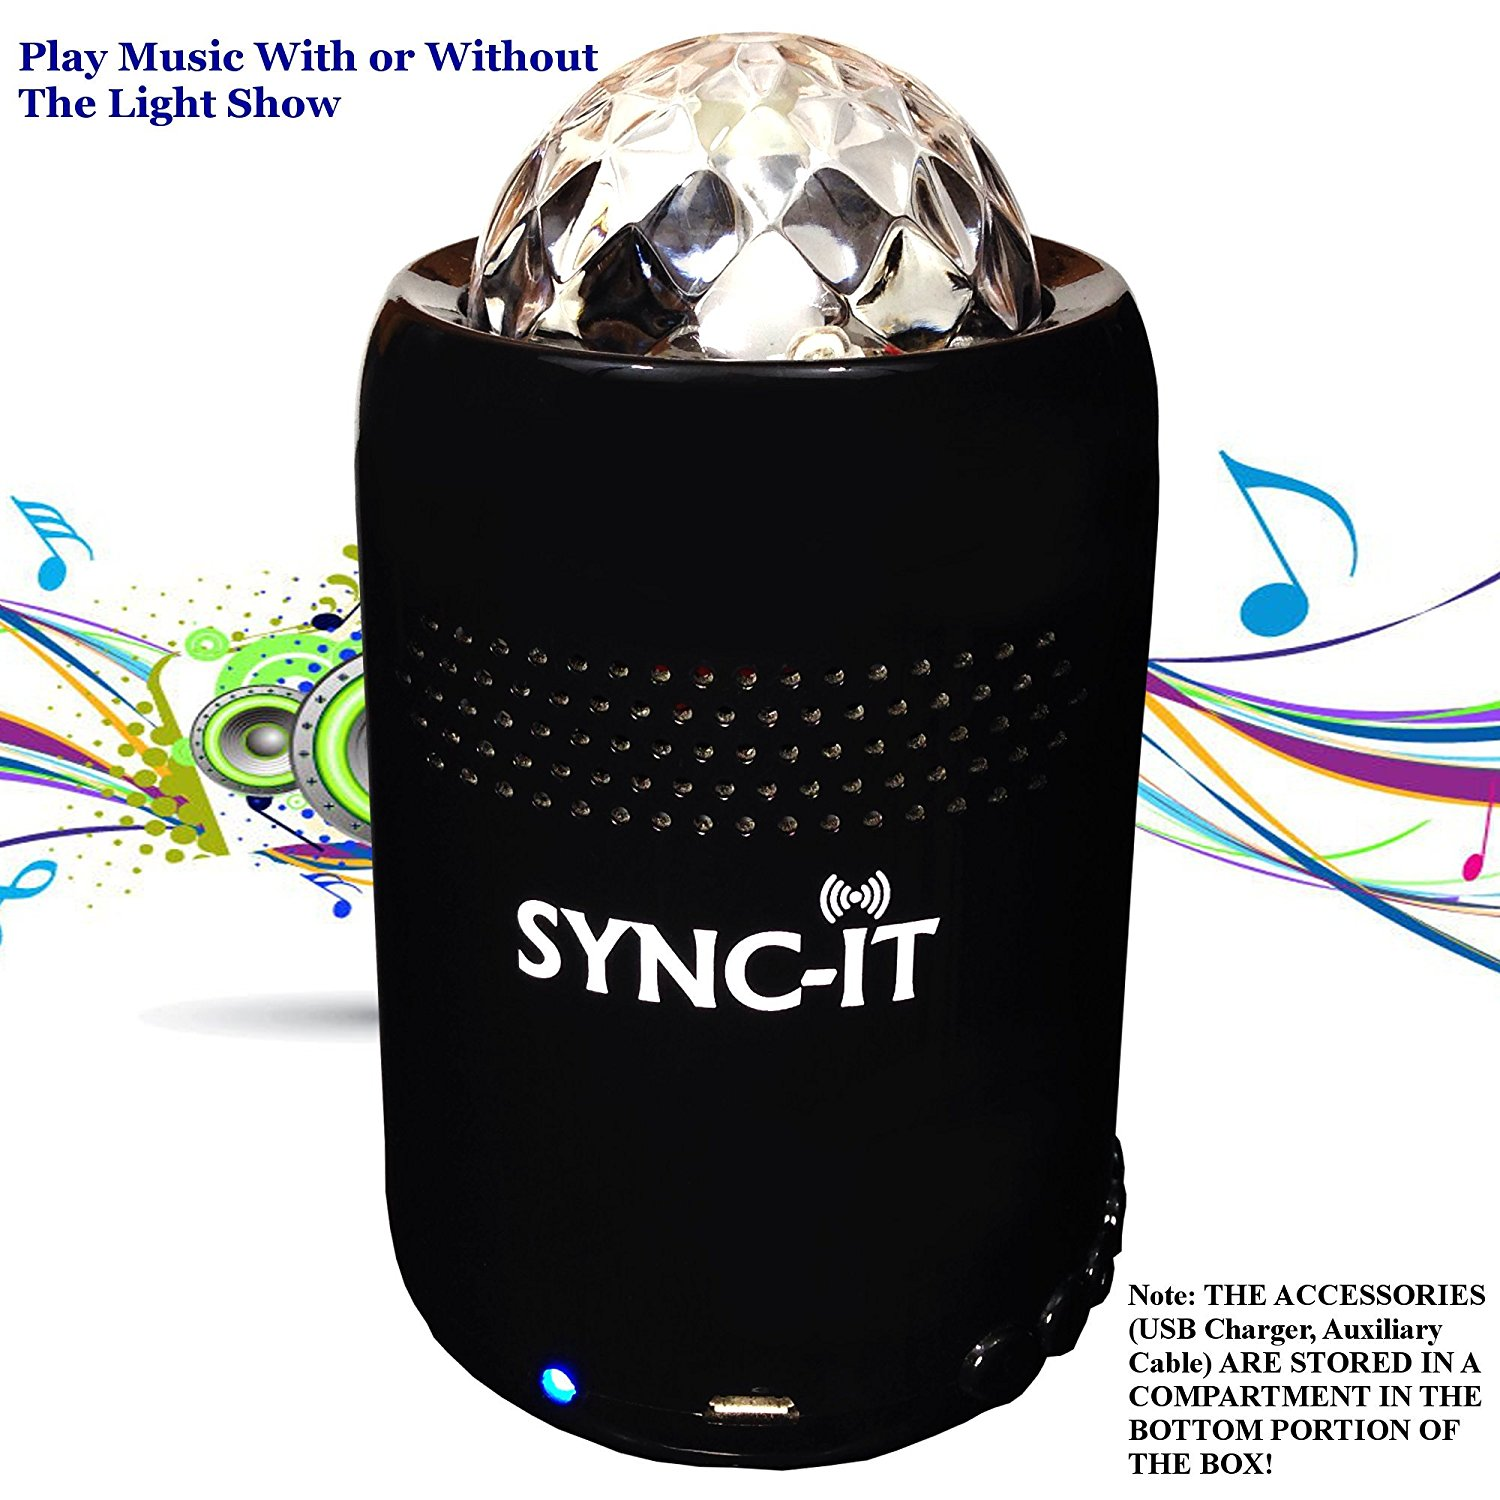 7 SYNC-IT Bluetooth Portable Wireless Party Speaker With Disco Light Show